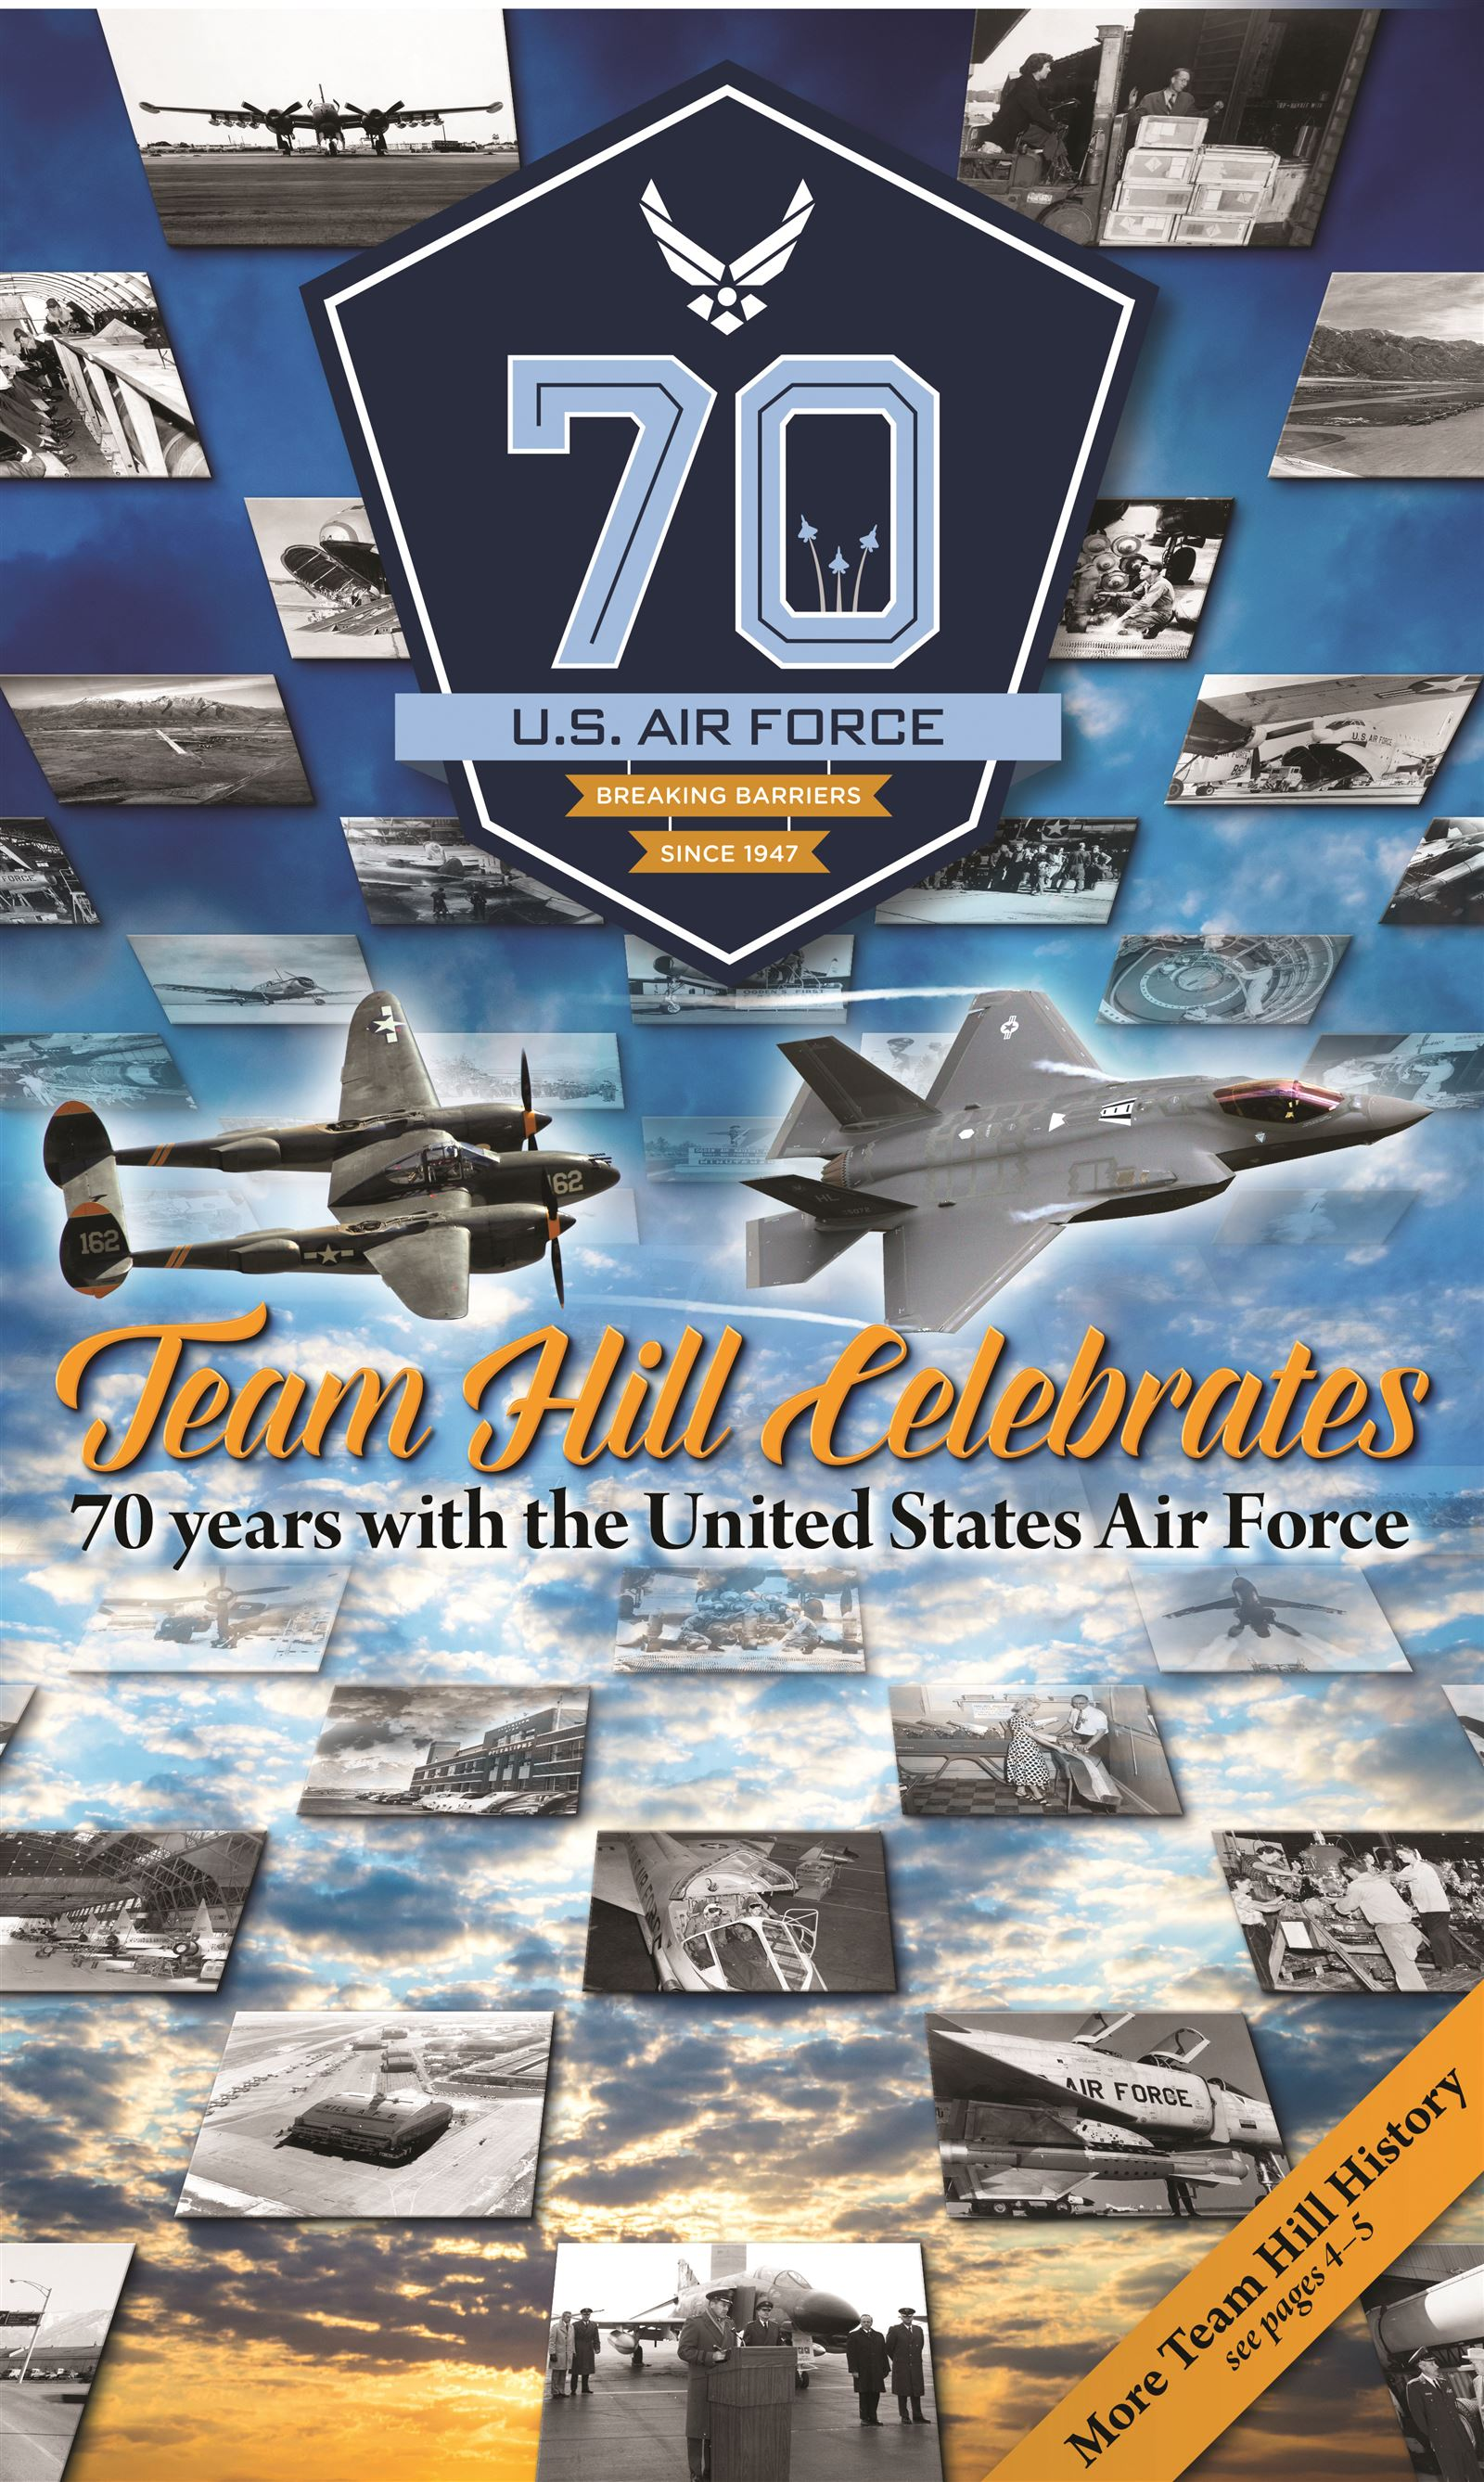 Team Hill Celebrates 70 years with the United States Air Force